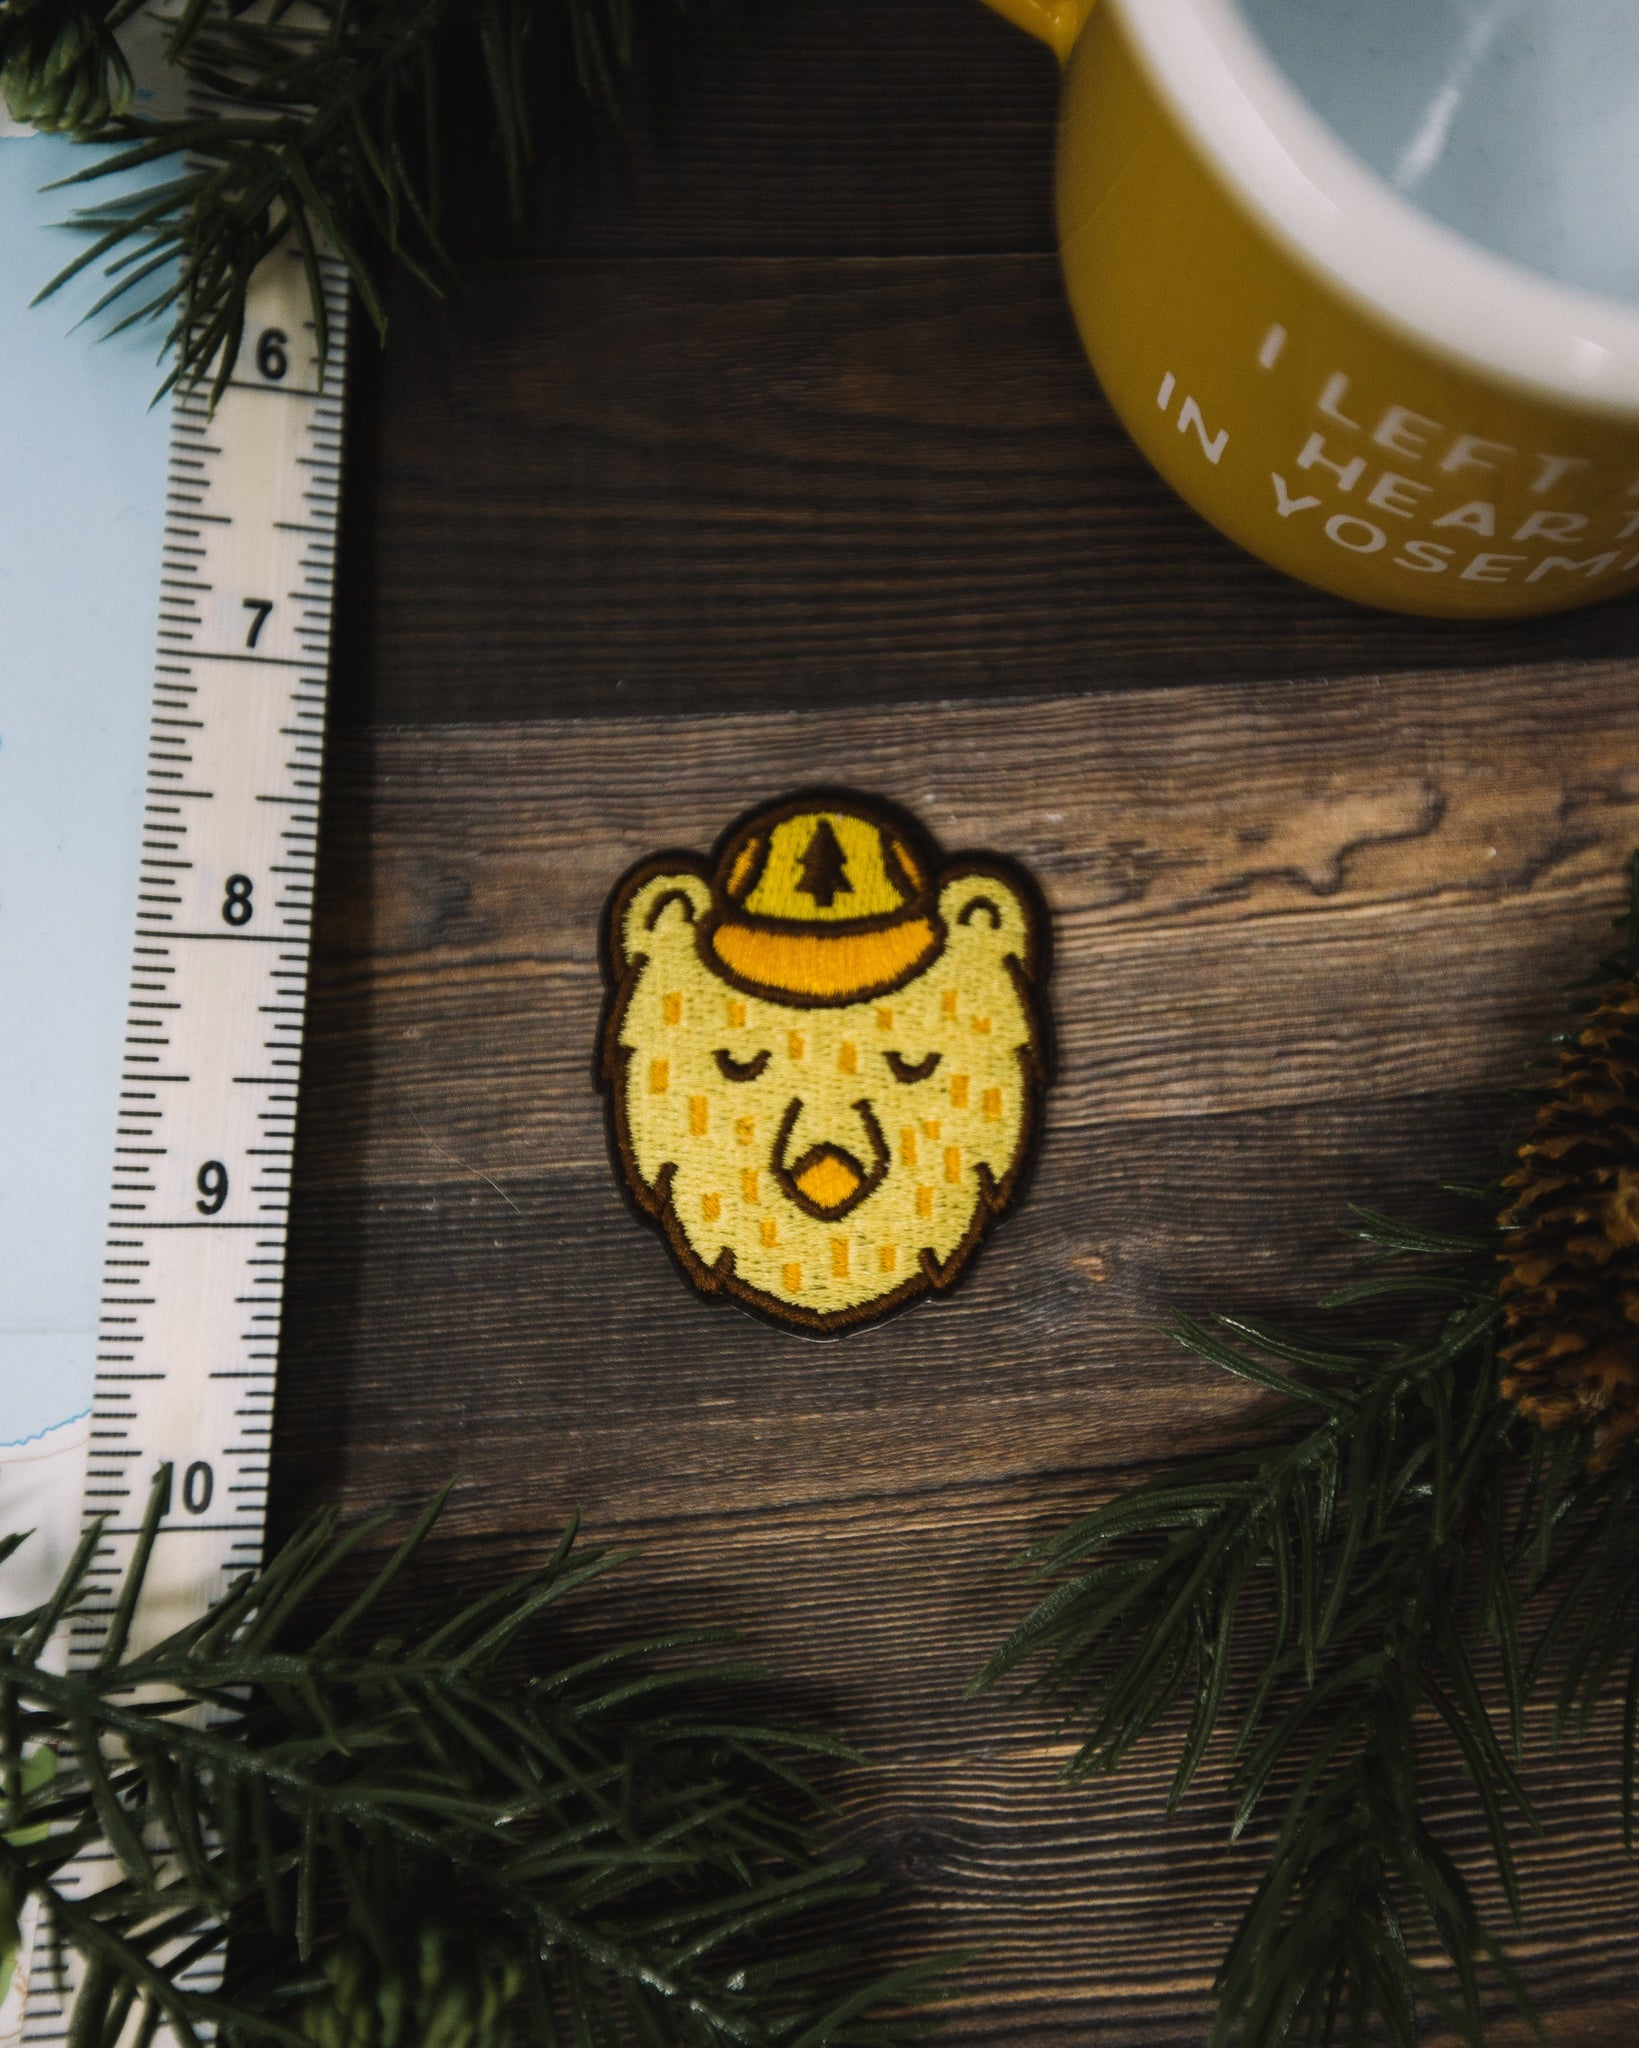 Ranger Bear Sticky Patch - The Parks Apparel